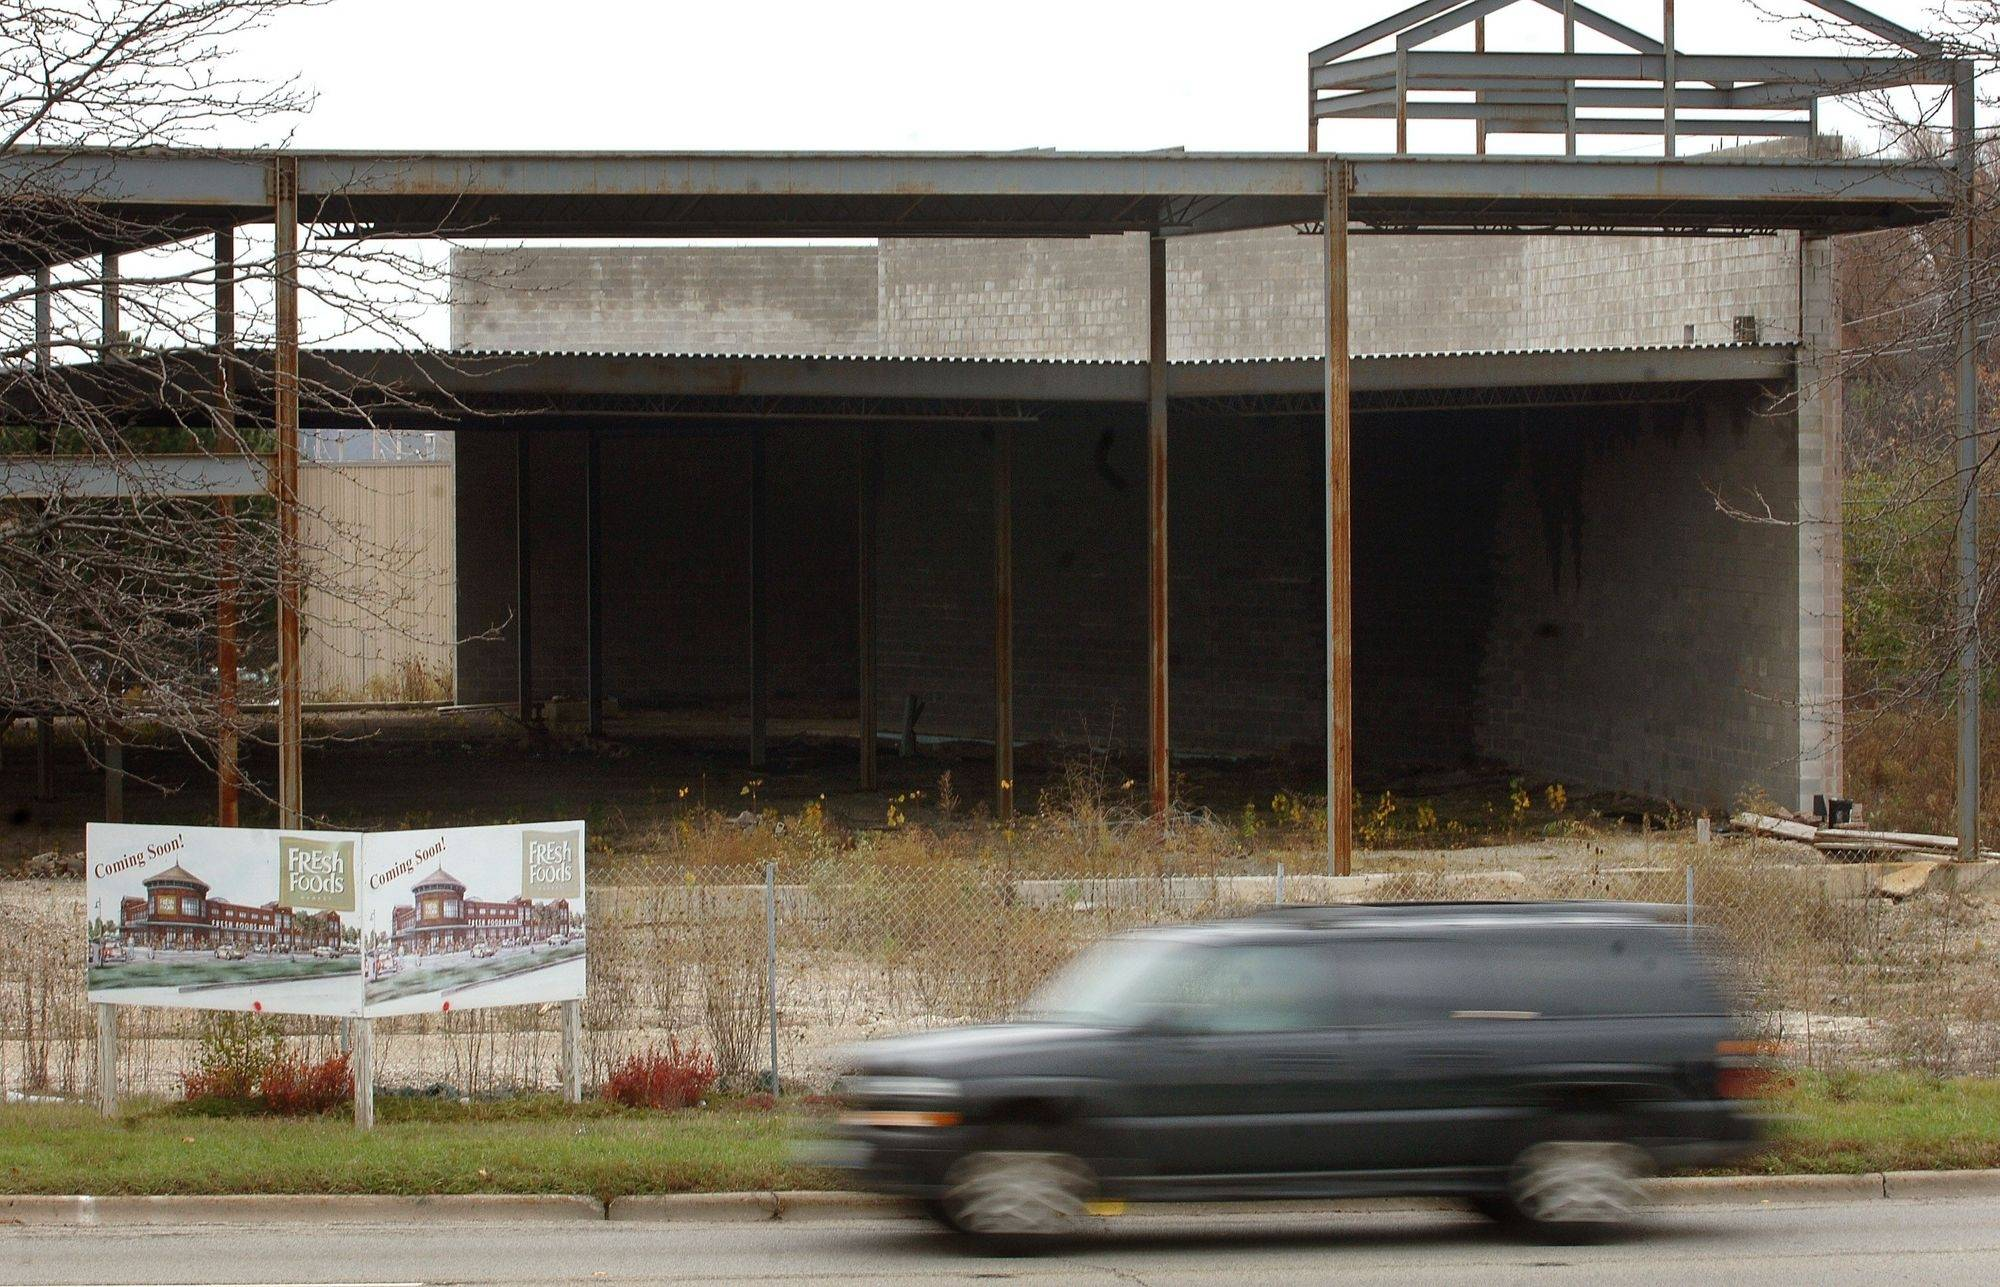 The steel structure in Libertyville, pictured here in October, was supposed to become a $10 million Fresh Foods store. Since the deal fell through, the structure is expected to be torn down.